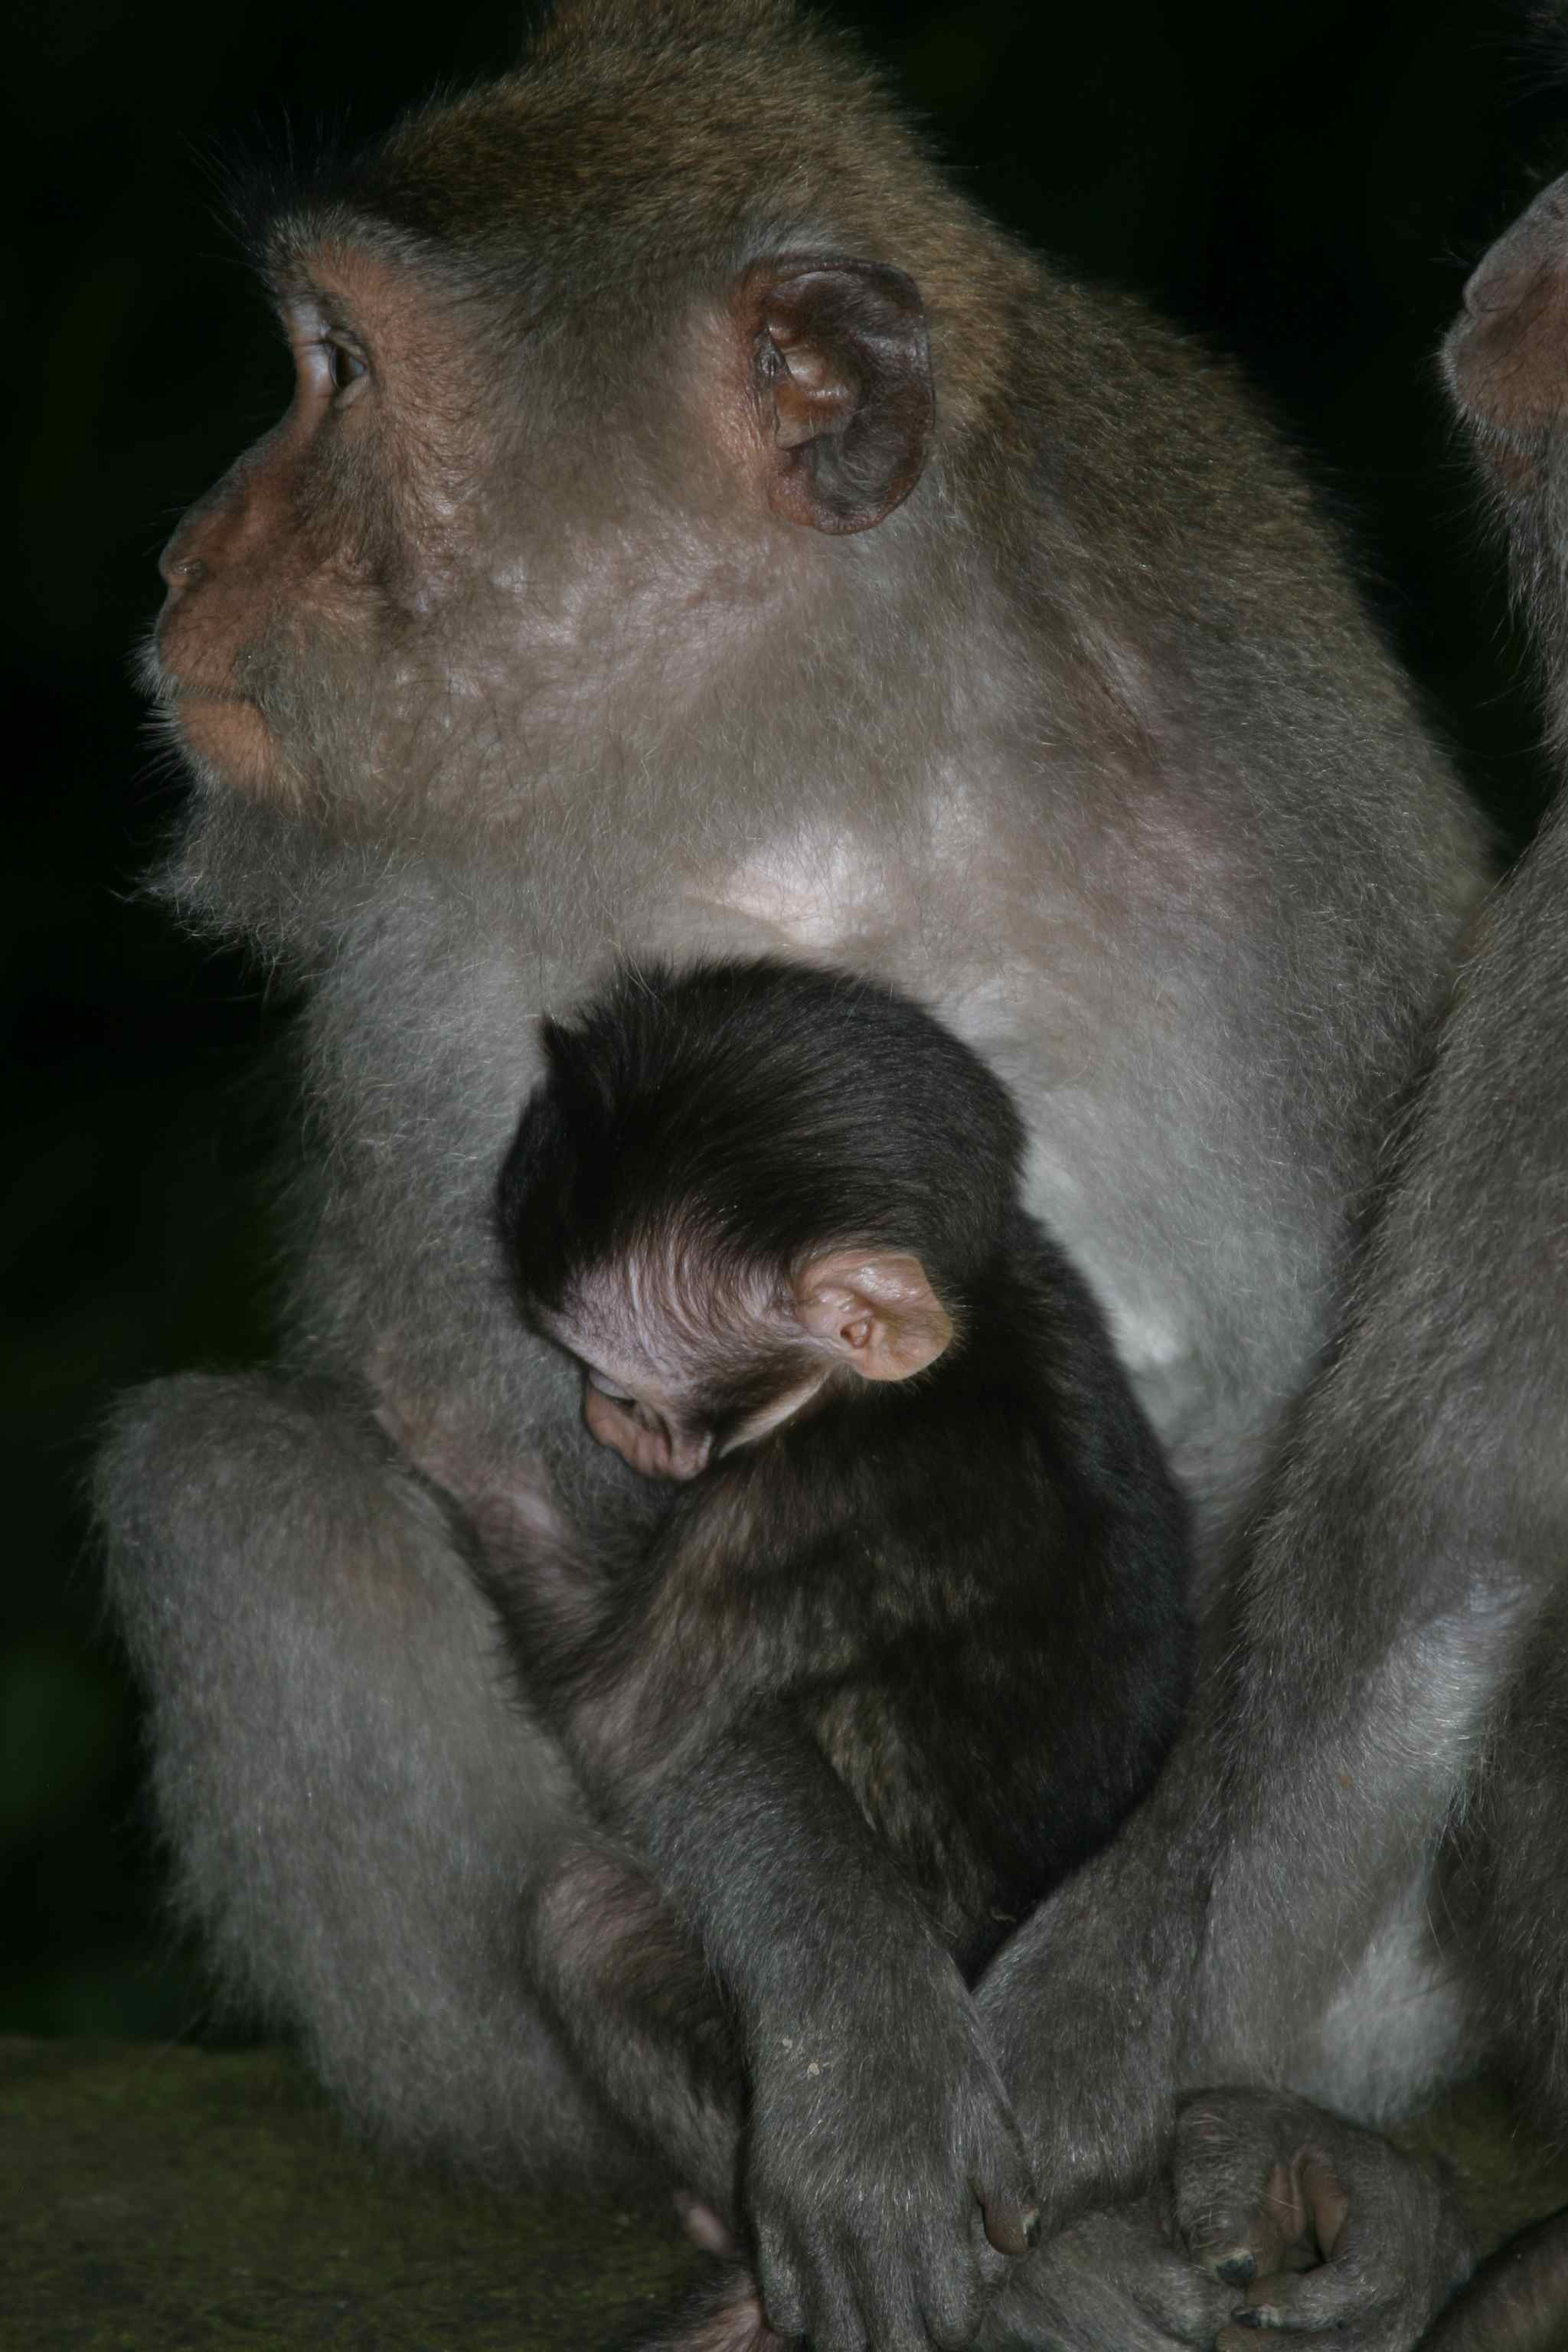 monkey-and-baby-three